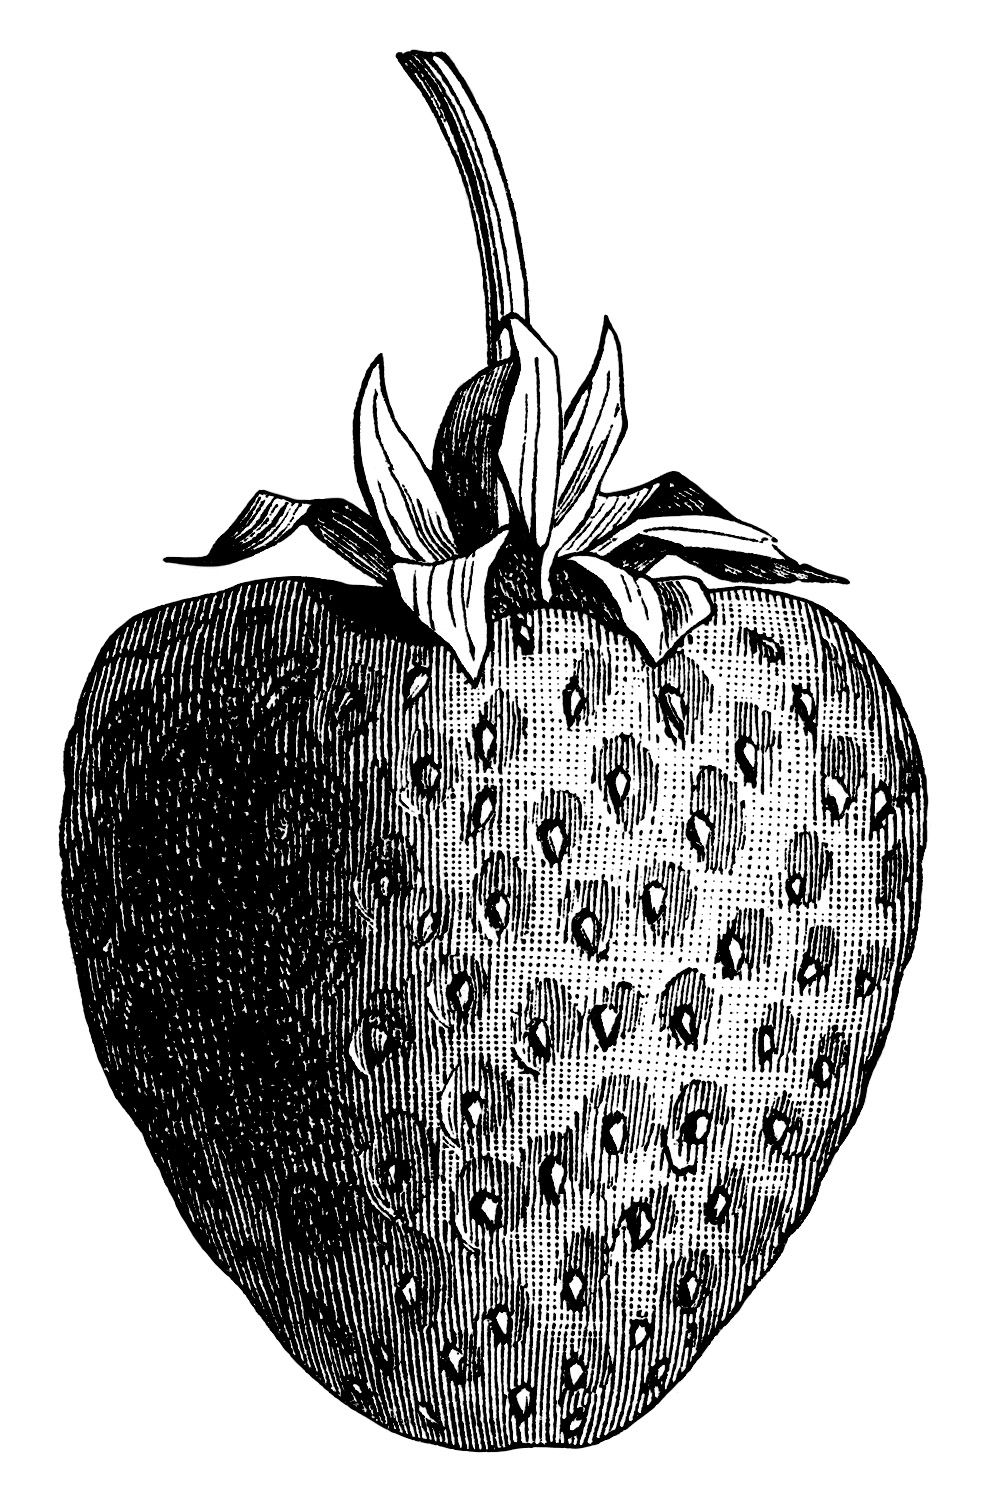 Berries clipart black and white. Vintage strawberry clip art